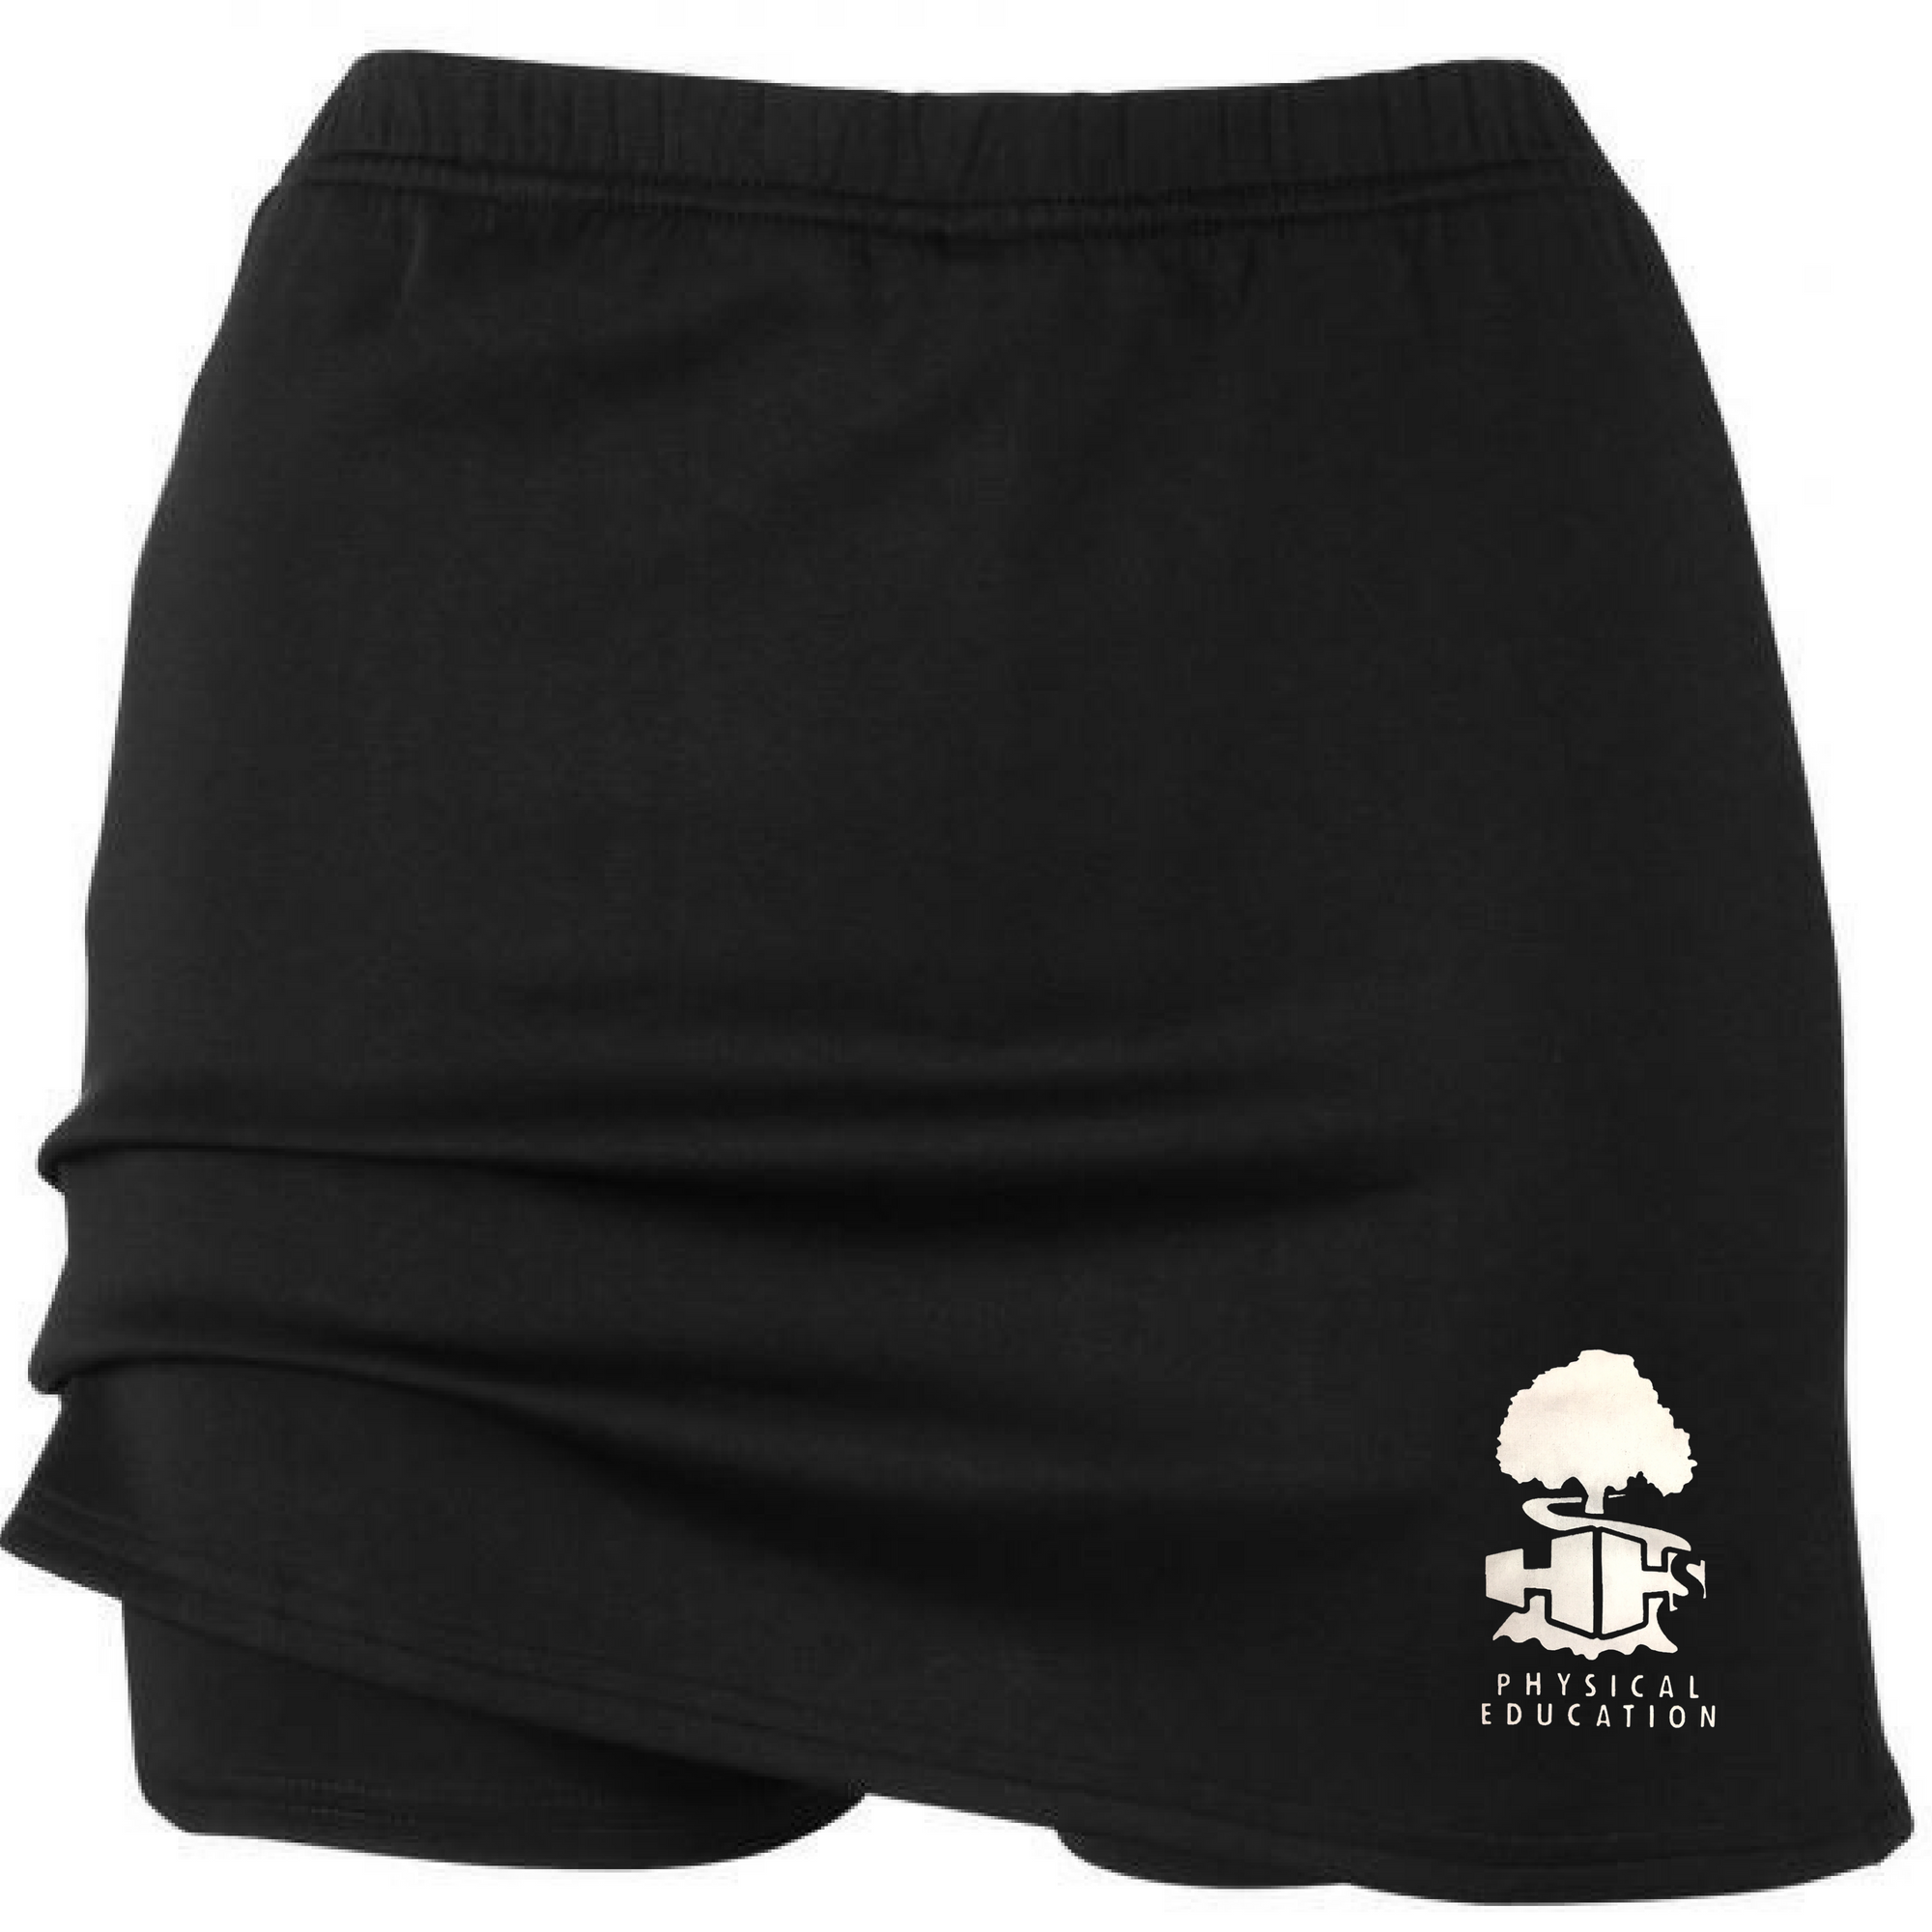 Hawthorn High School Skort Skirt and Short Combi